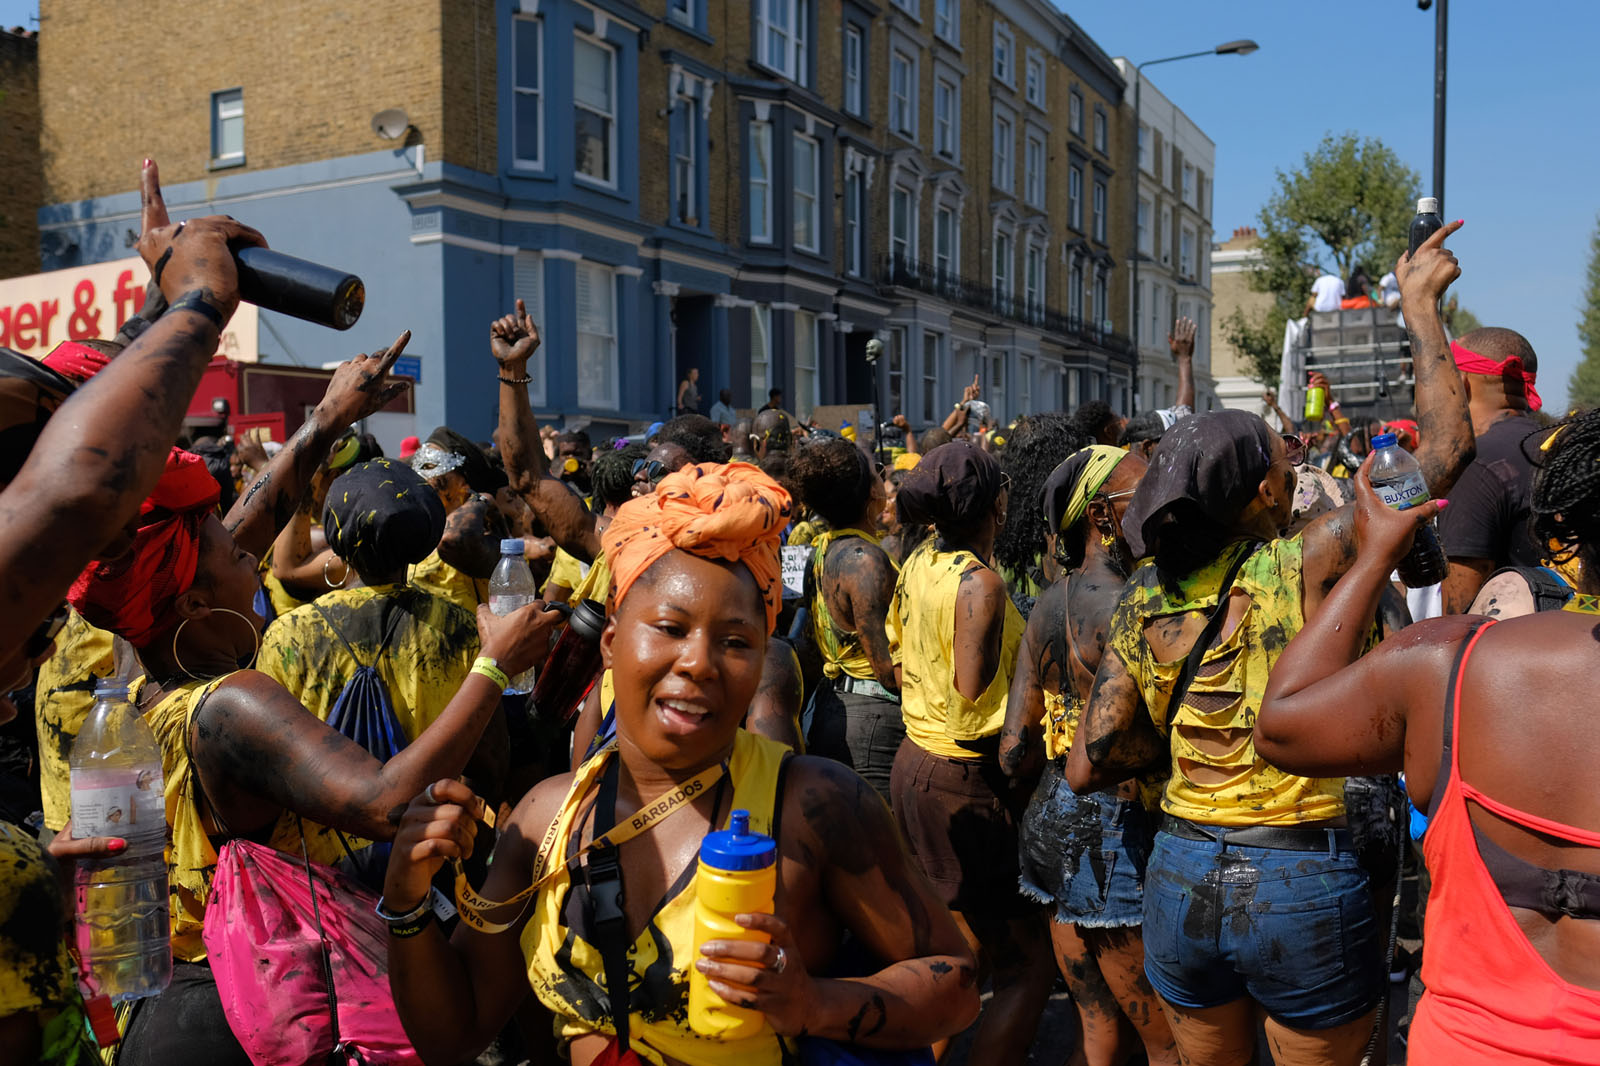 London Notting Hill carnival concrete soldiers Leon Tyler fuji x-Pro 2 16mm 1.4 street photography